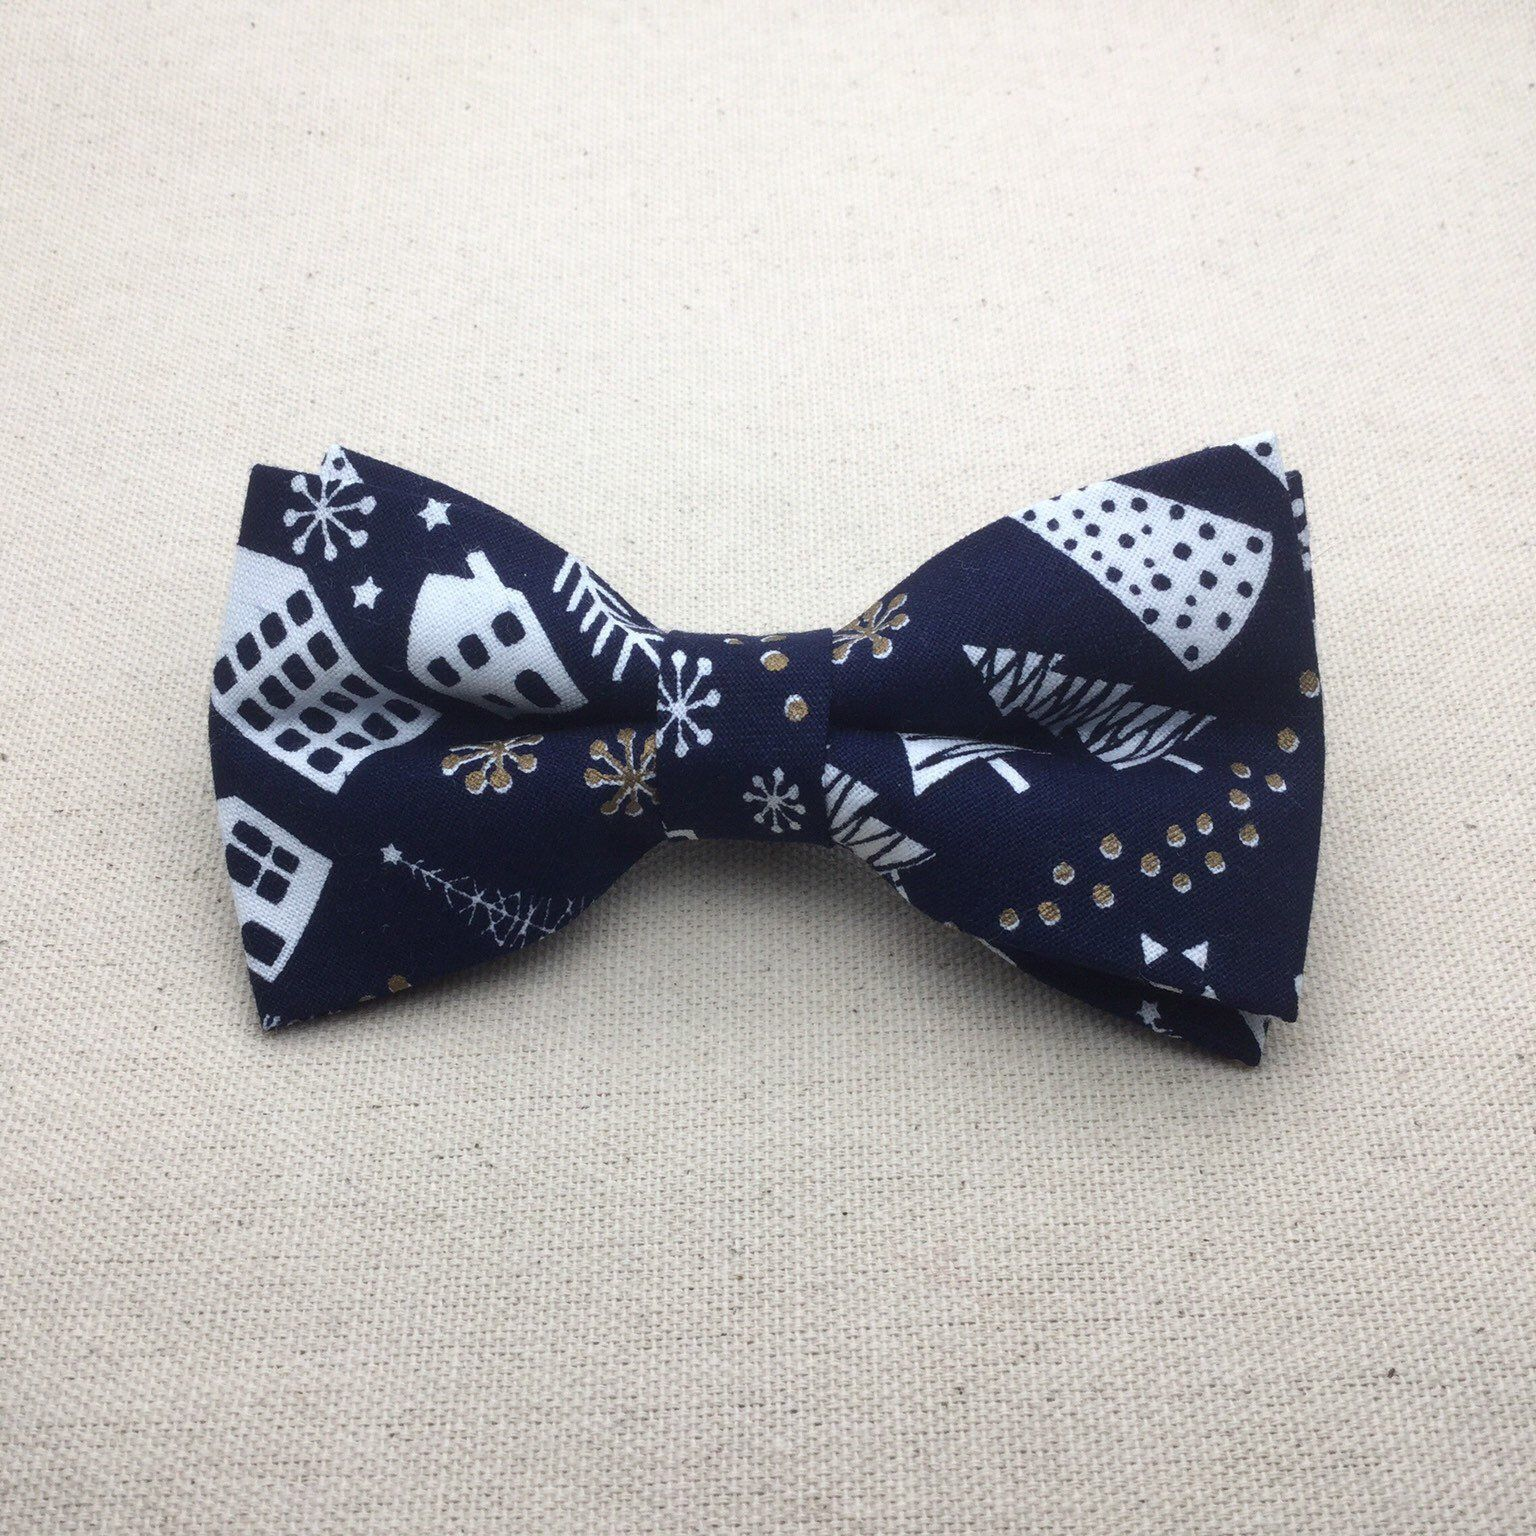 ccc16b70fd58 Navy Blue Christmas Bow Tie, Xmas BowTie, Children Bow Tie, Navy Bow tie